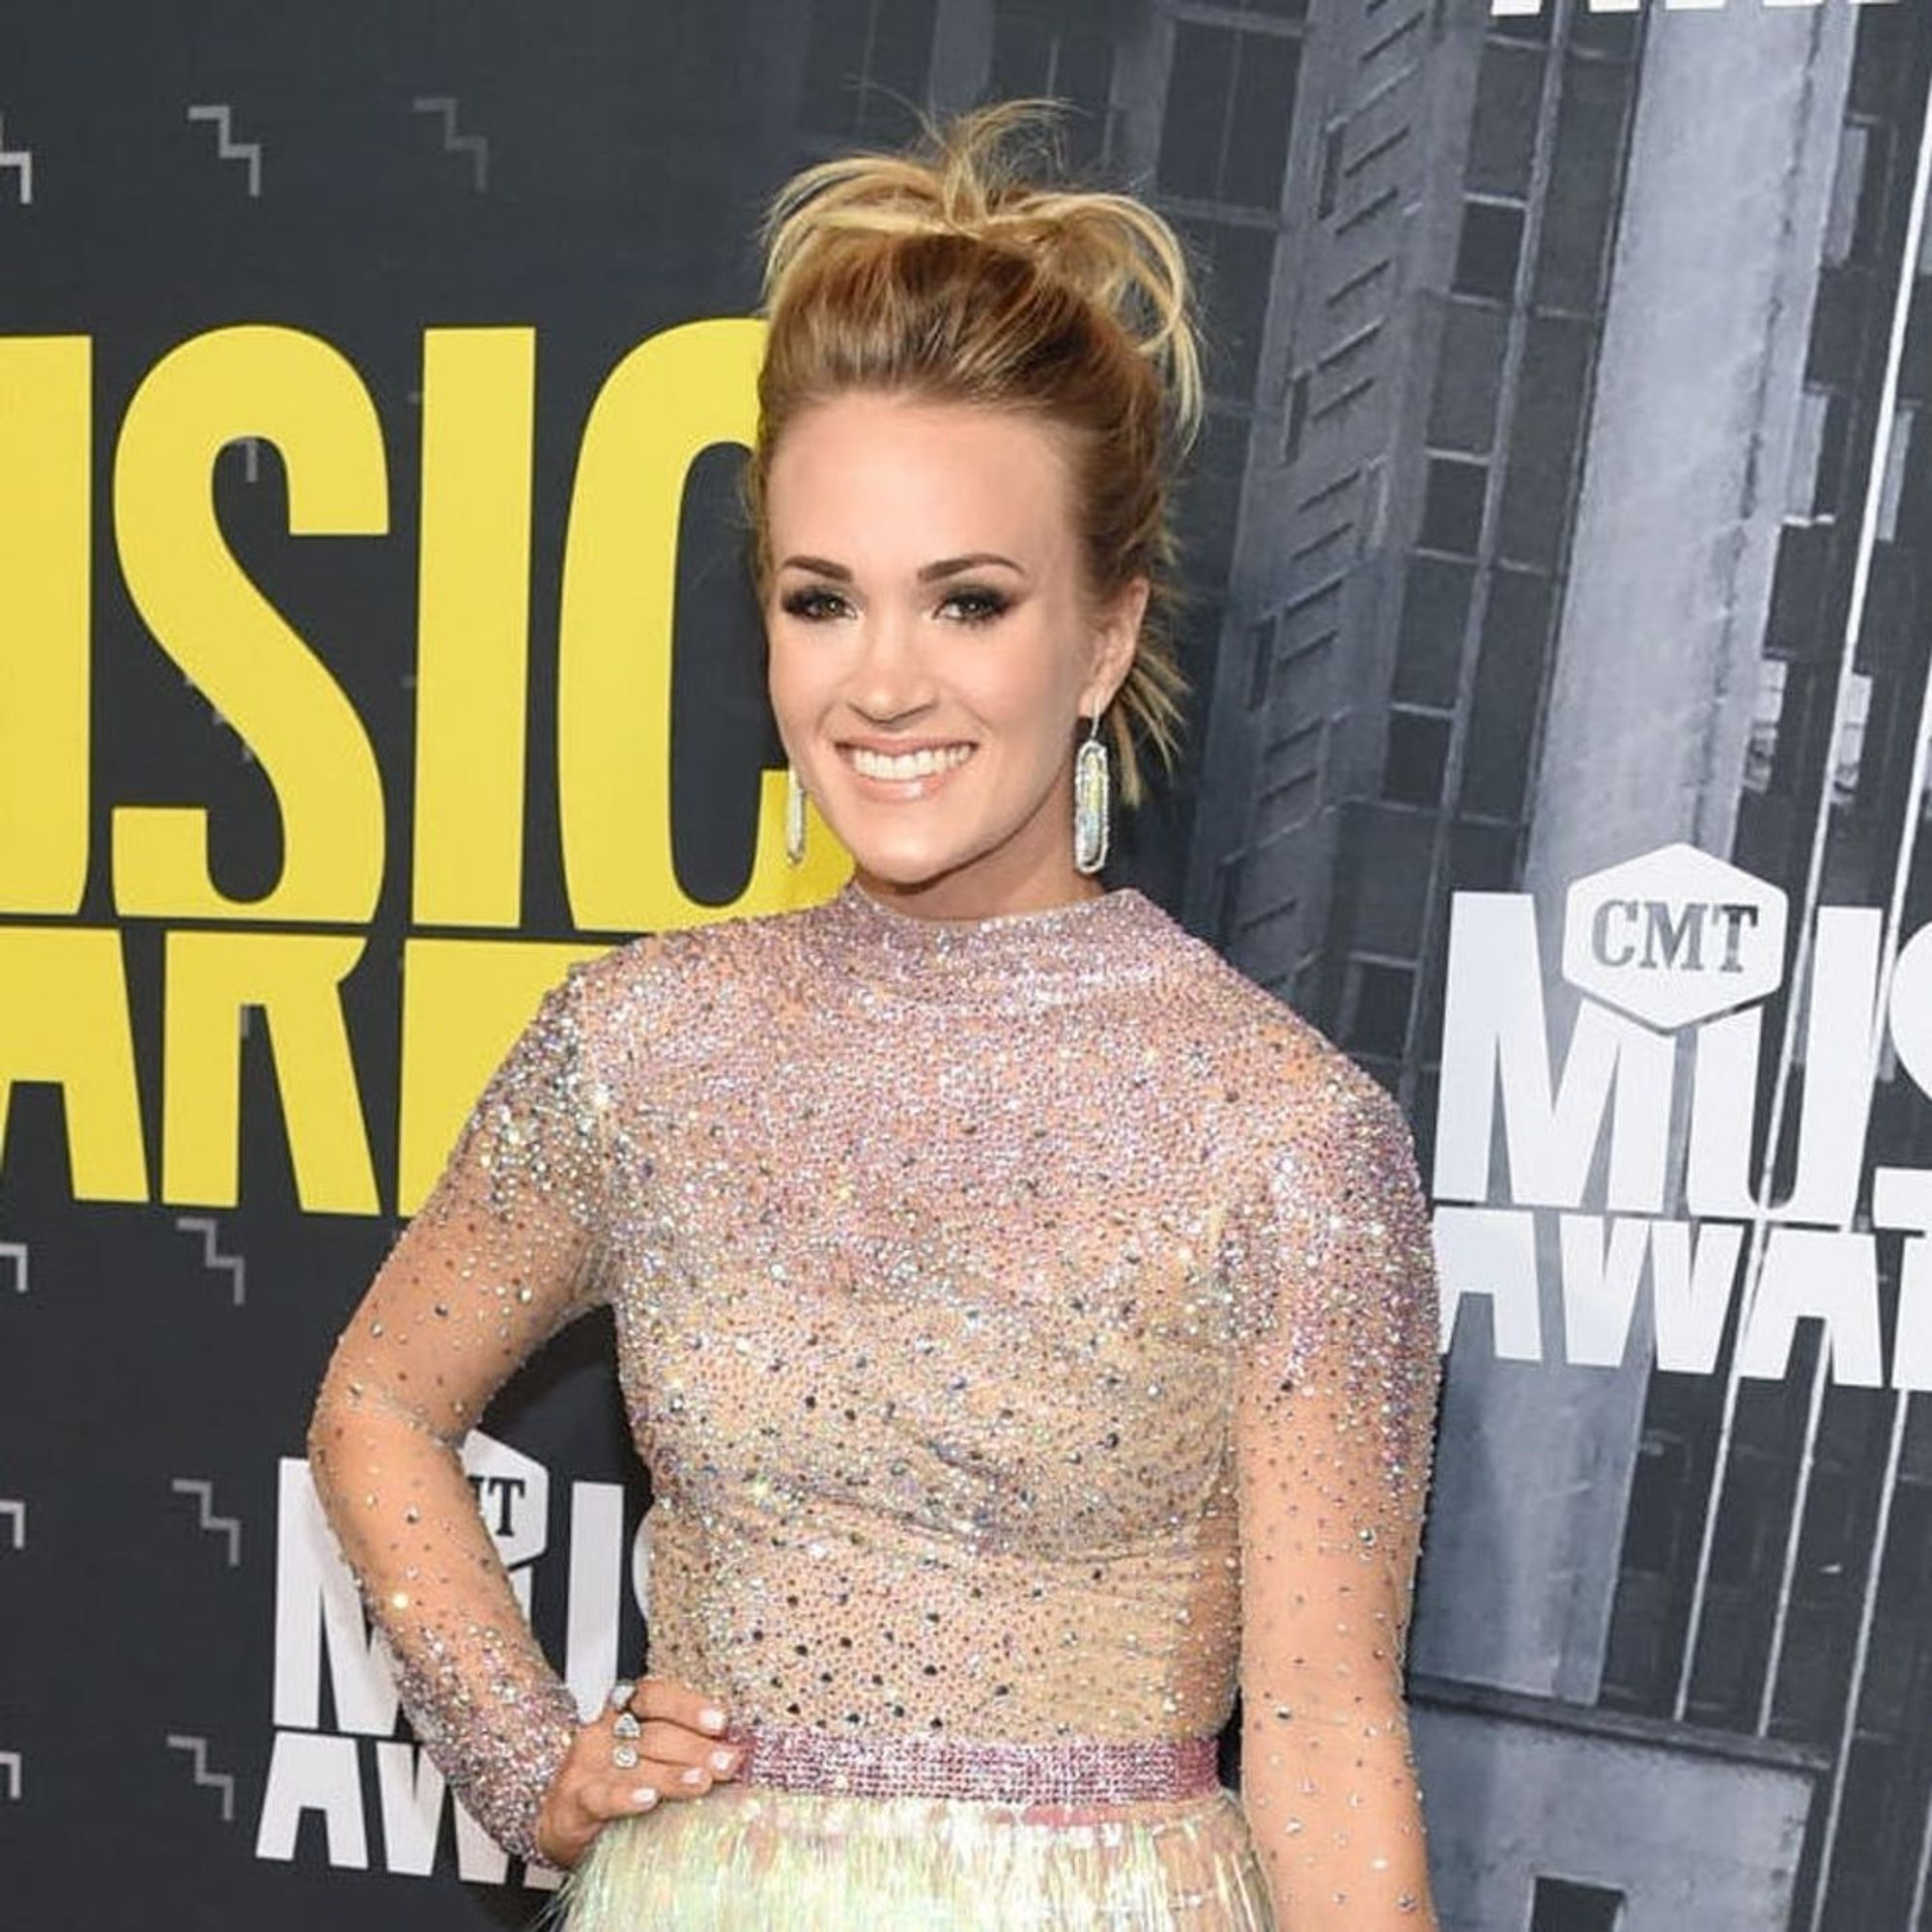 All The Nominees And Winners From The 2017 CMT Music